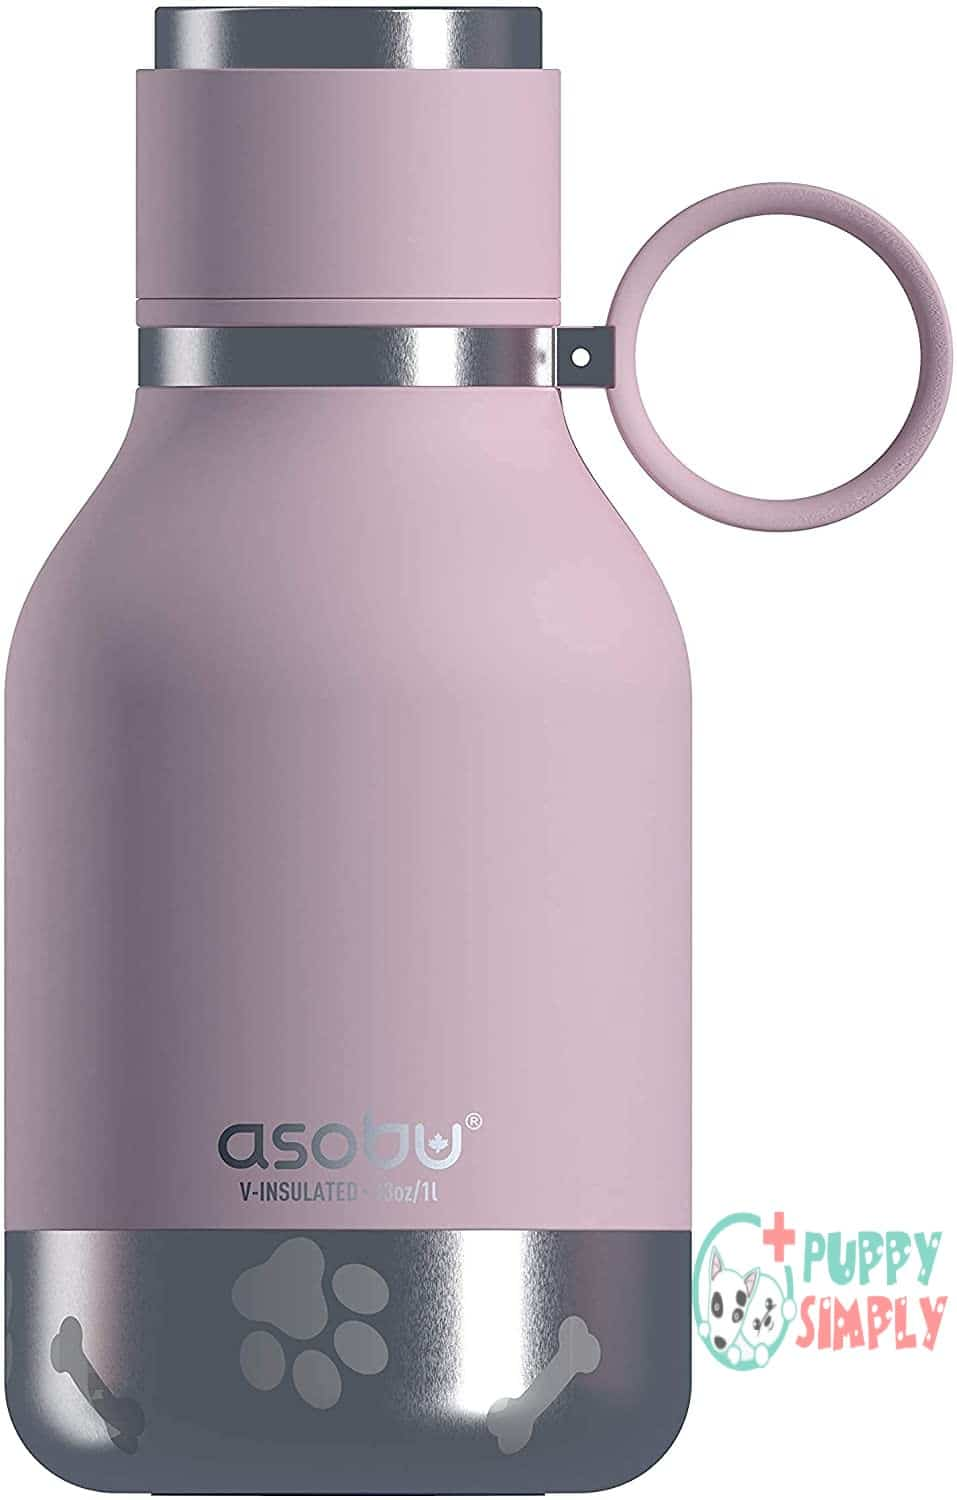 Asobu Dog Bowl Attached to Stainless Steel Insulated Travel Pet Bottle